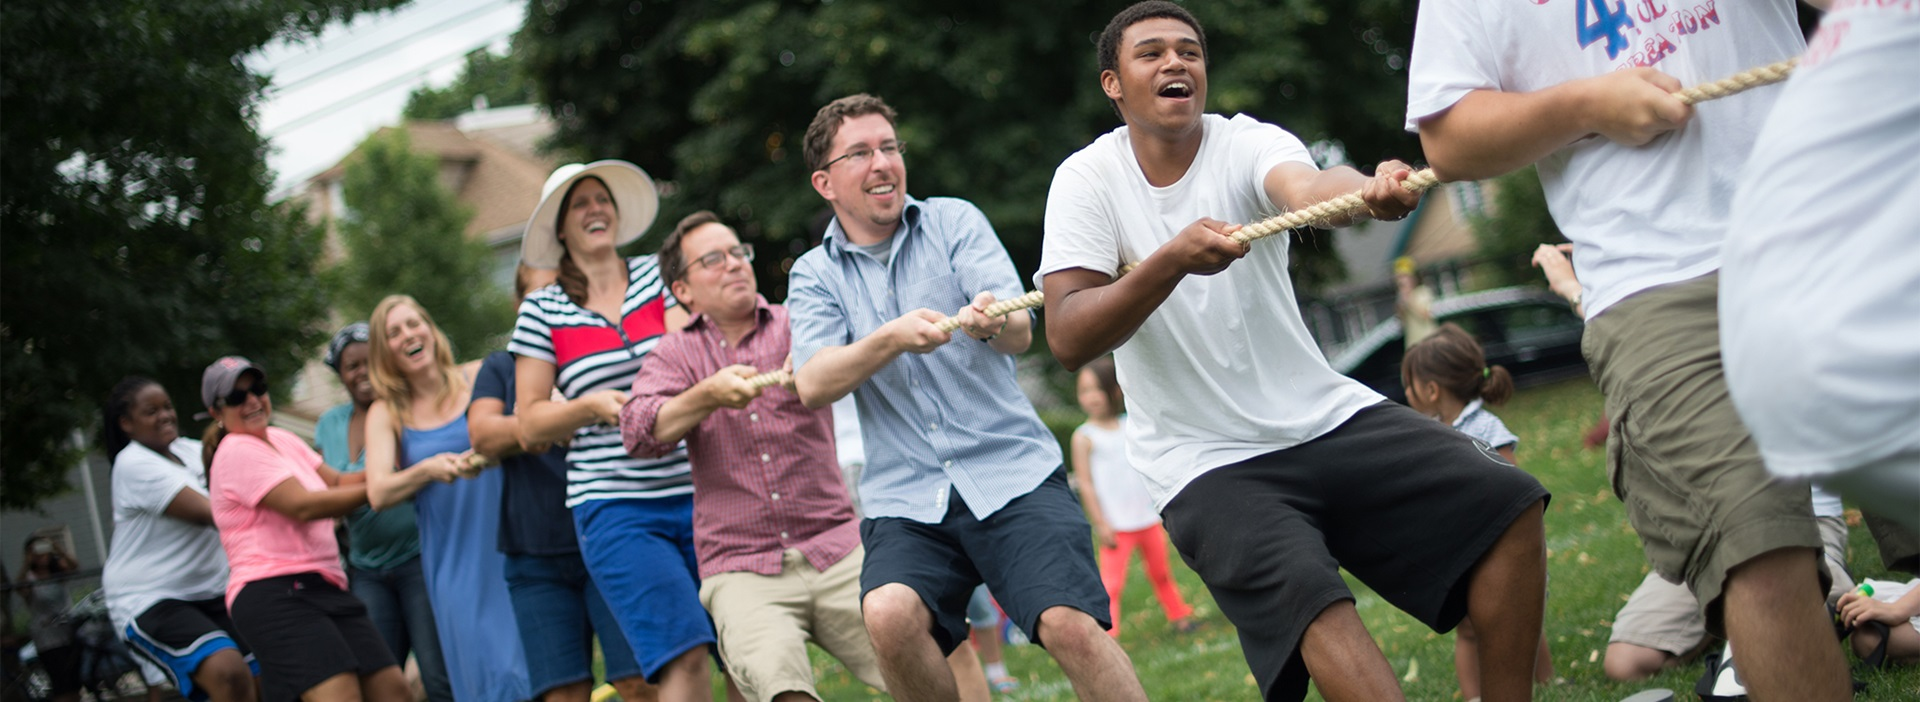 Photo of people playing tug-of-war